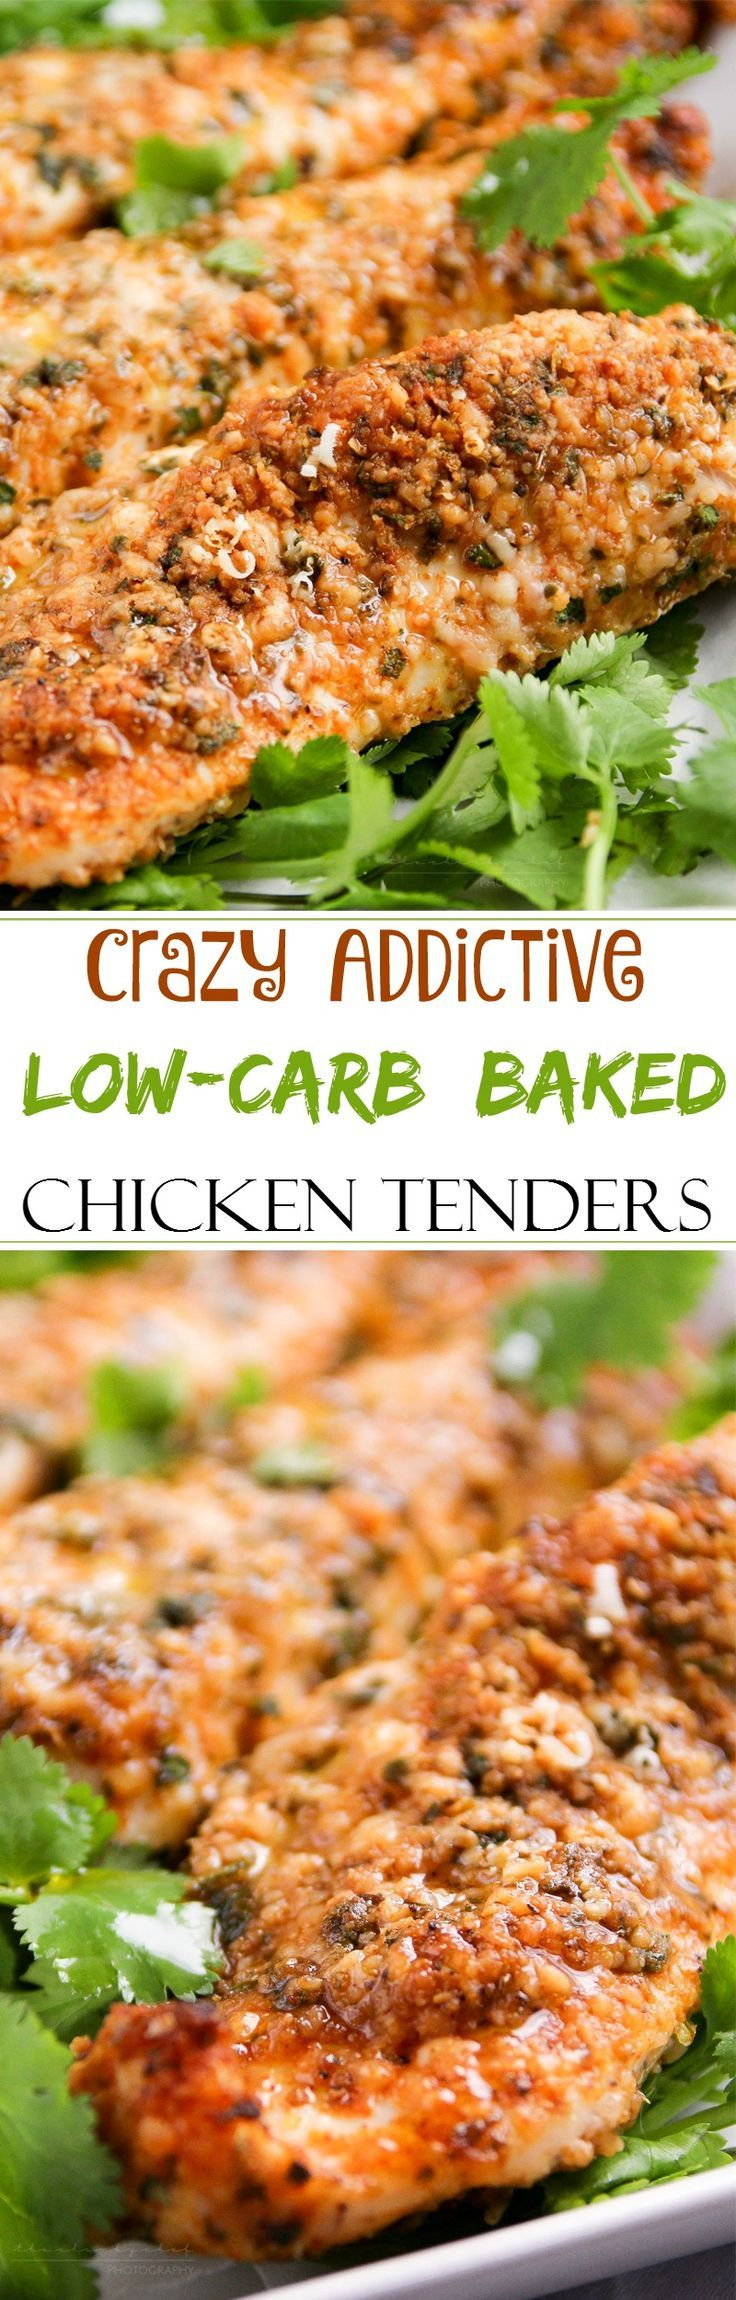 Low Carb Baked Chicken Tenders - These baked chicken tenders are coated in a deliciously savory crust, yet have zero breading, which makes for an awesomely low carb meal